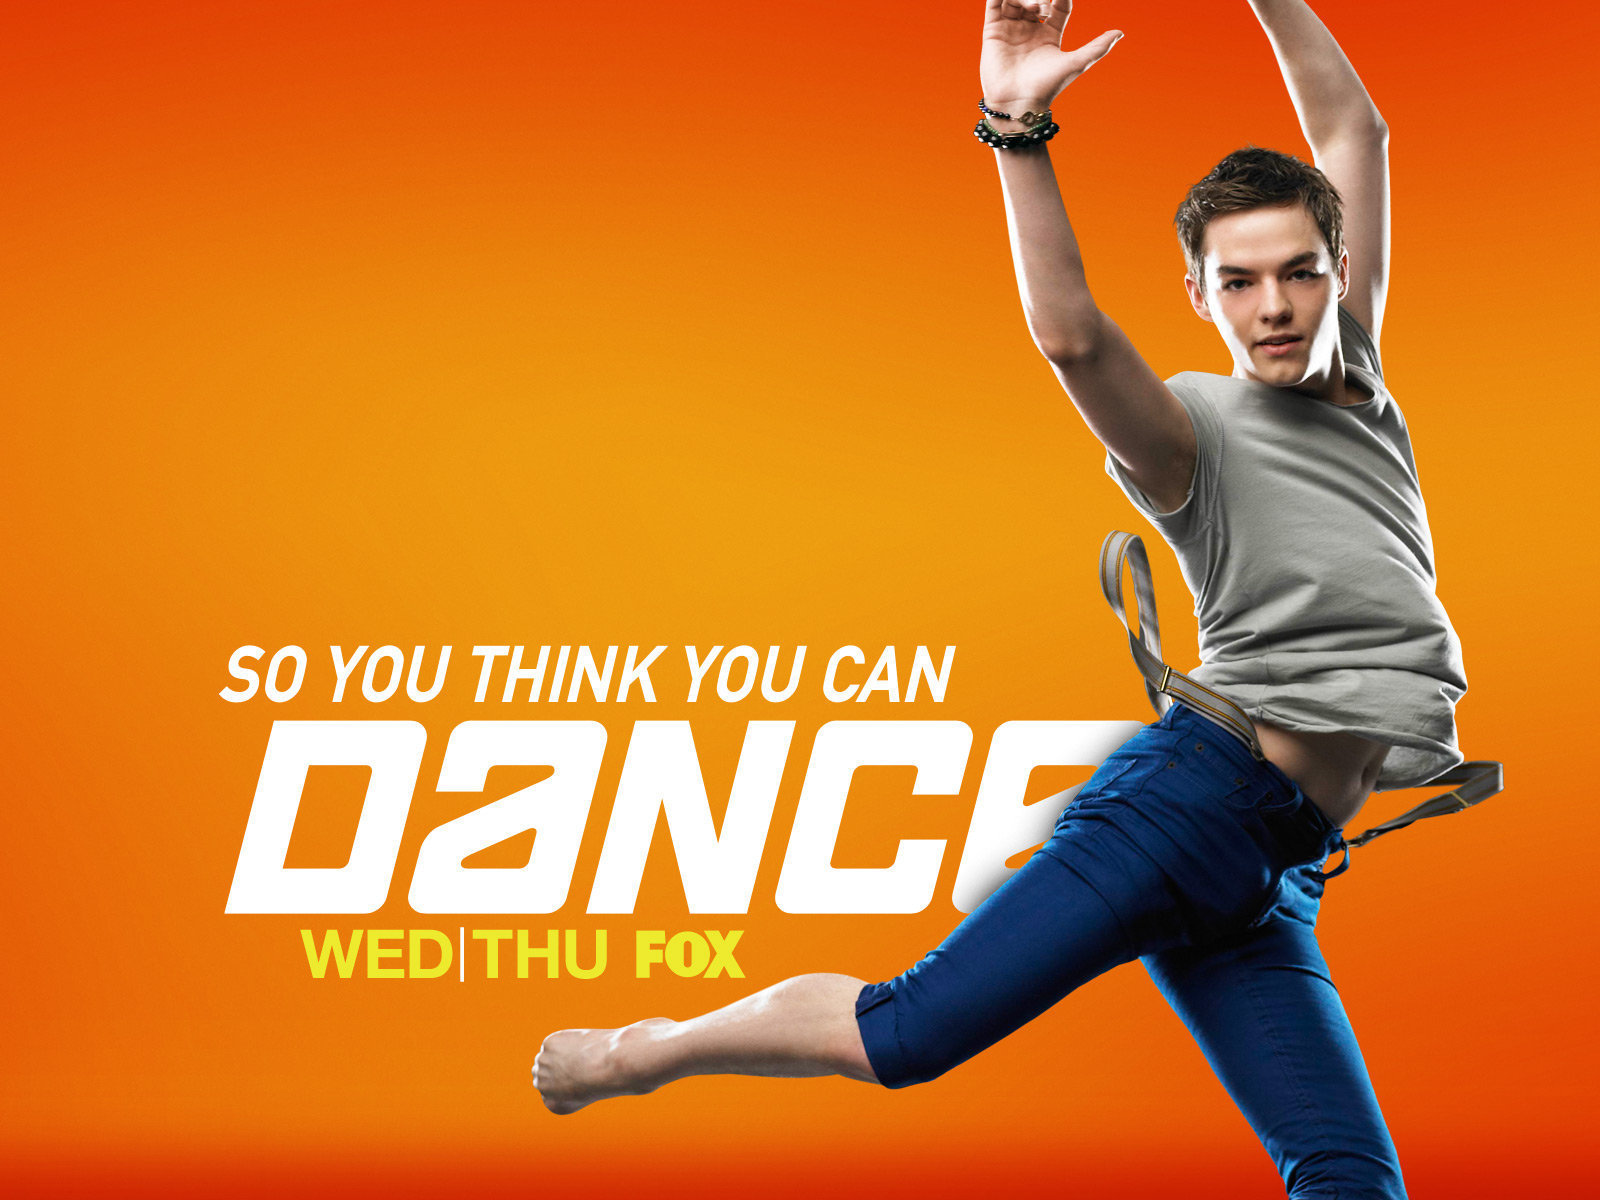 http://images4.fanpop.com/image/photos/14900000/SYTYCD-7-so-you-think-you-can-dance-14932153-1600-1200.jpg